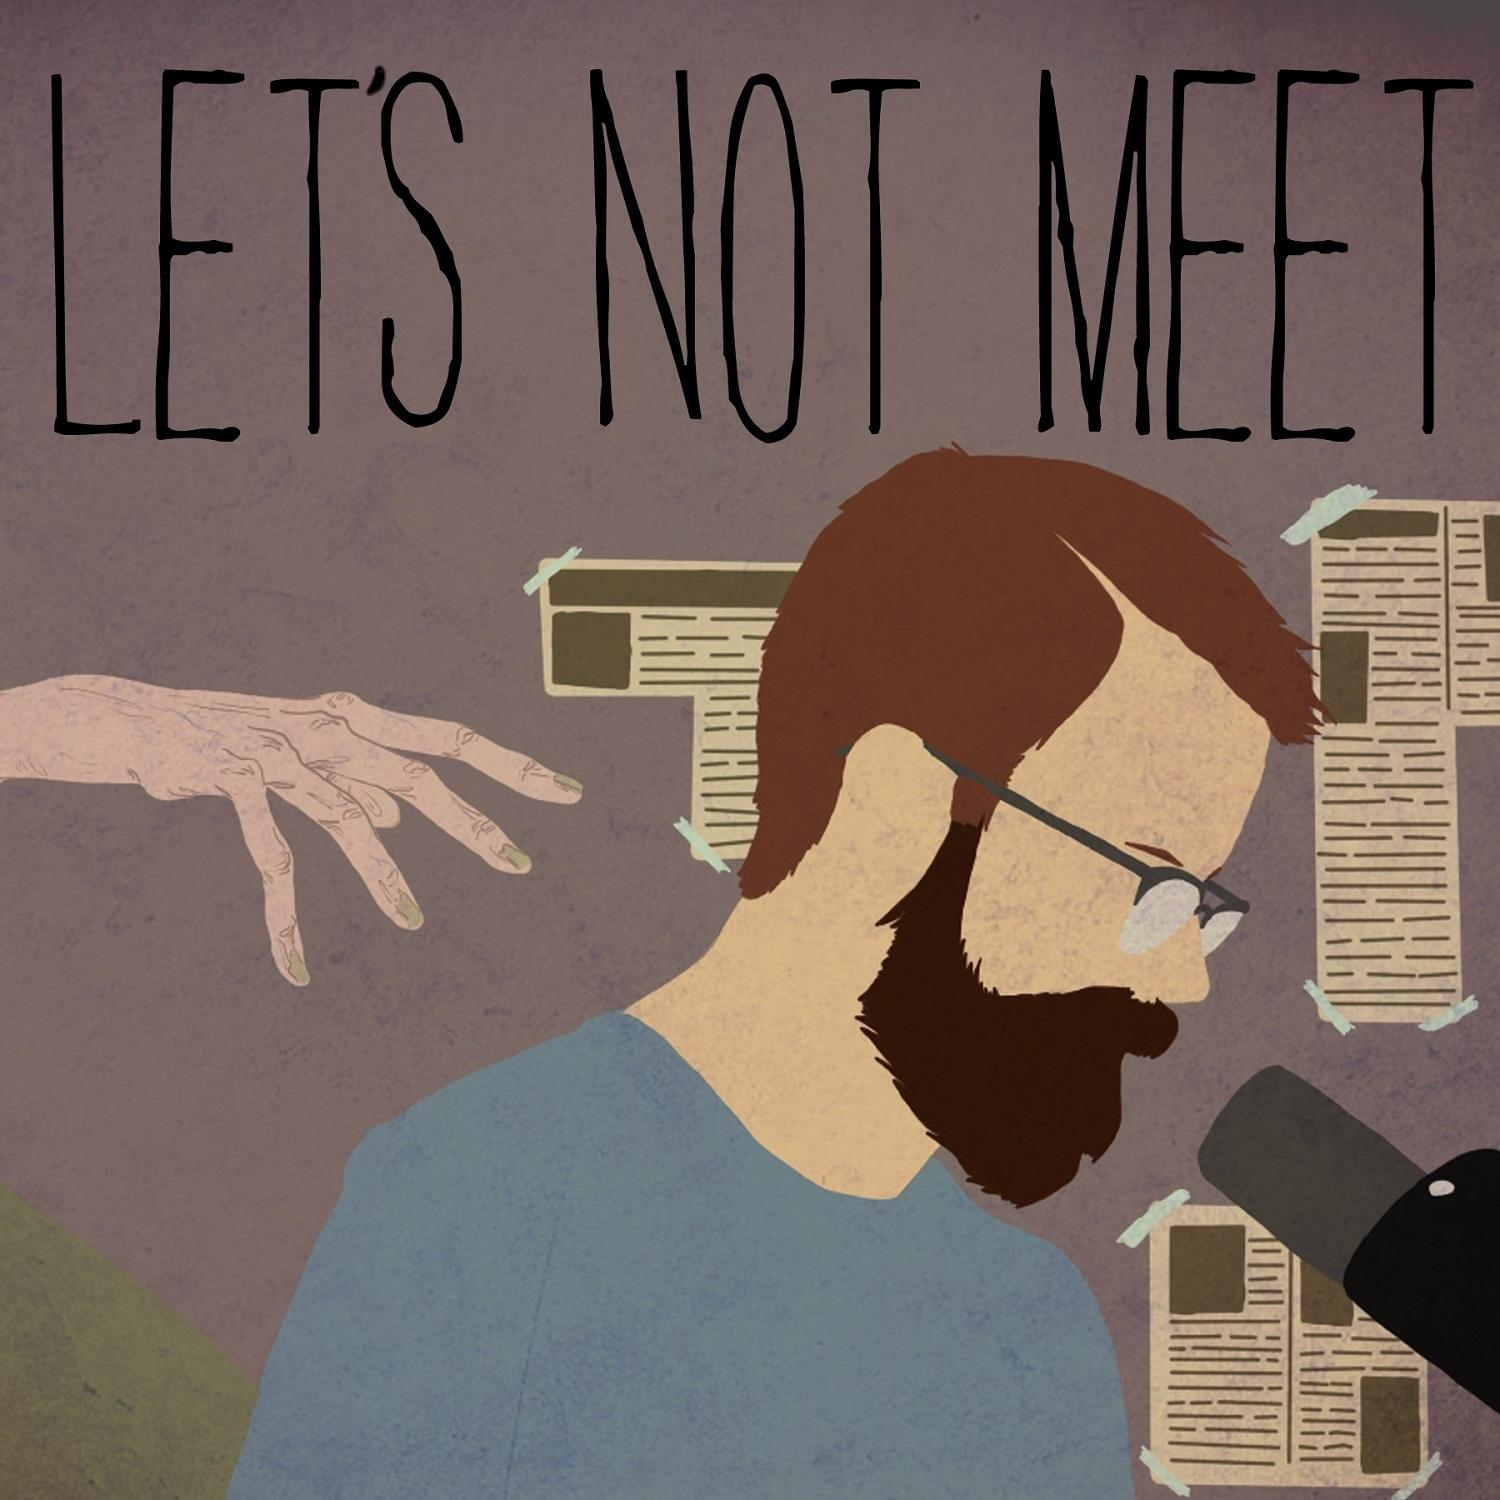 Let's Not Meet is a true horror podcast